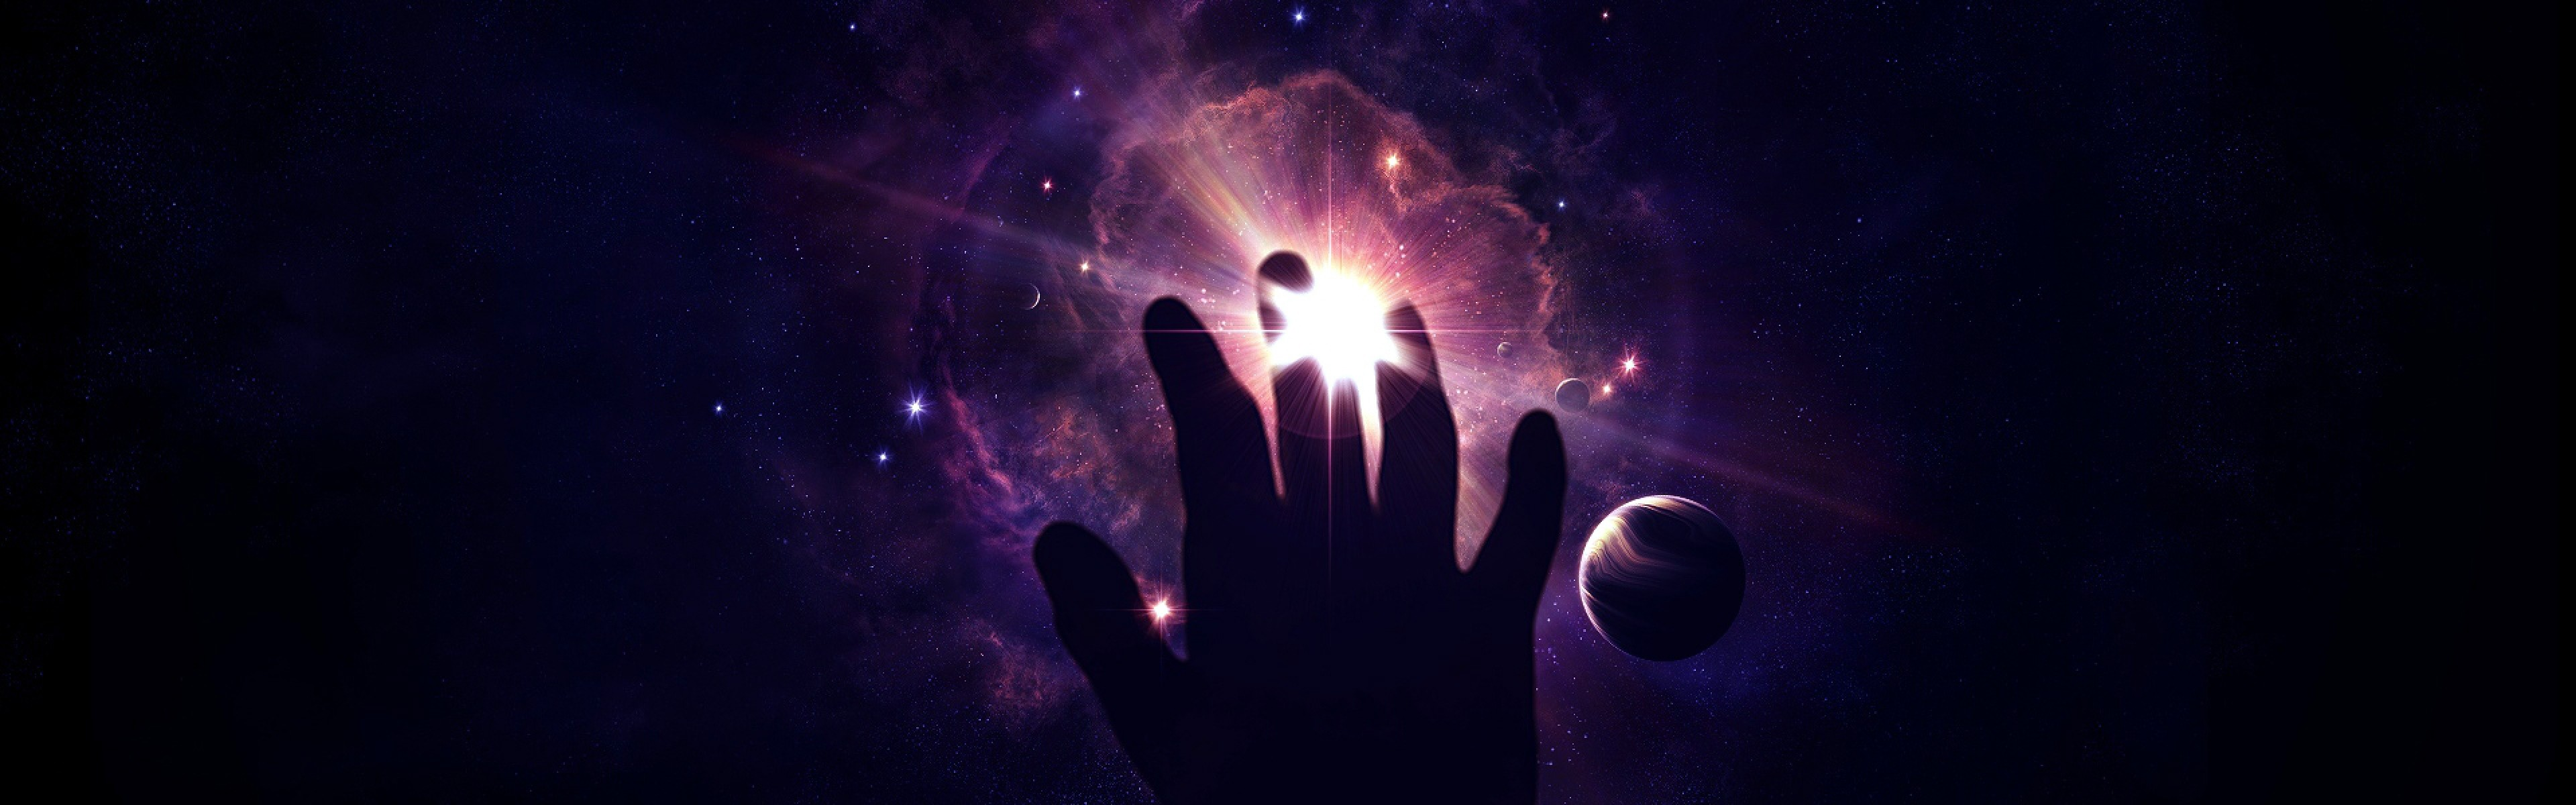 Wallpaper space, star, hand, unreality